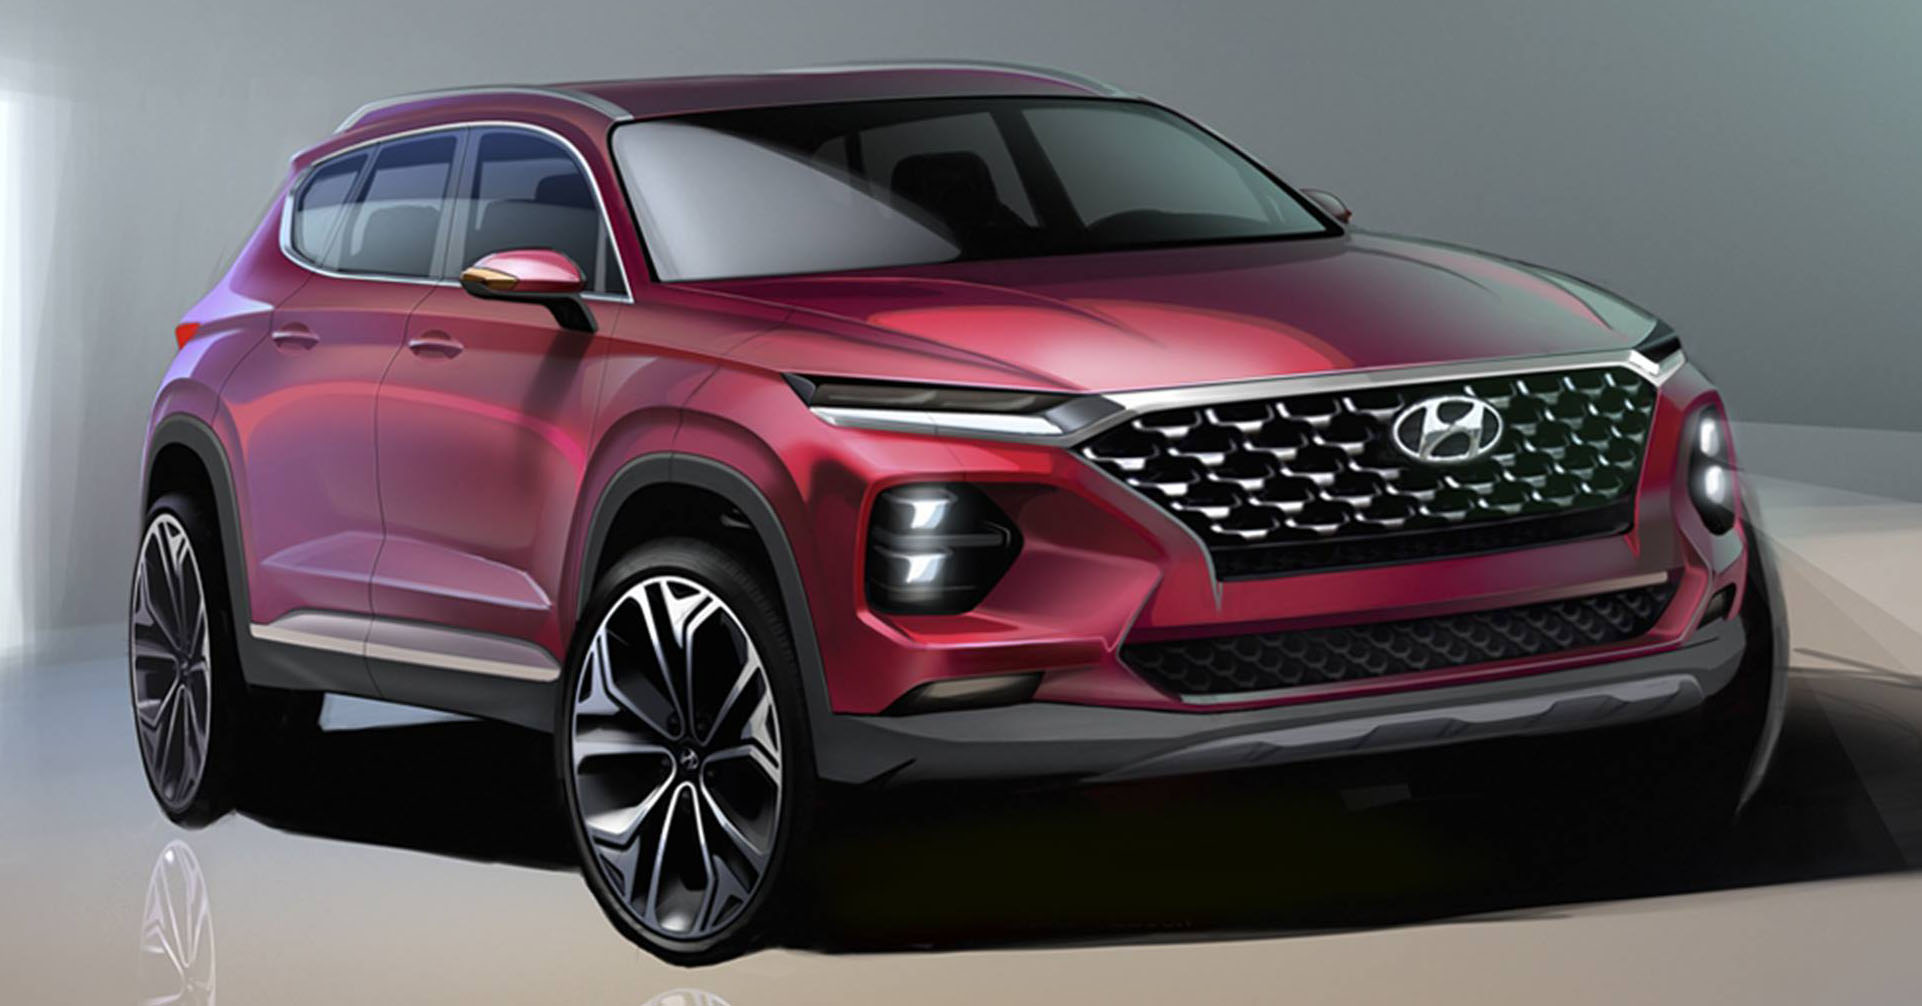 Santa Fe Suv >> Hyundai Santa Fe – renders of fourth-gen SUV shown Paul Tan - Image 773055